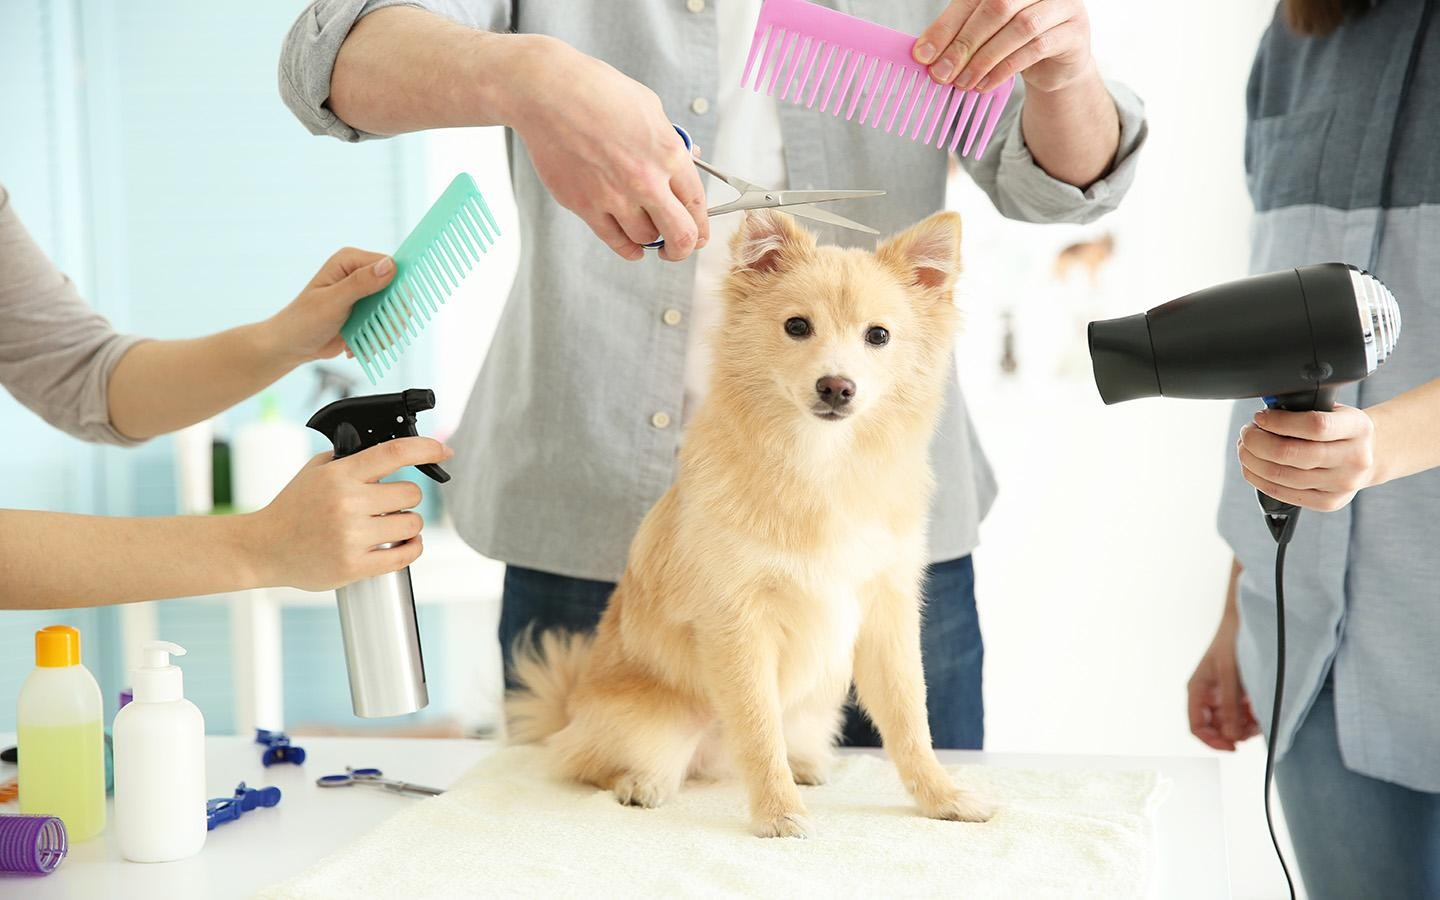 Pet grooming salon, est 1999, under full management, good ROI